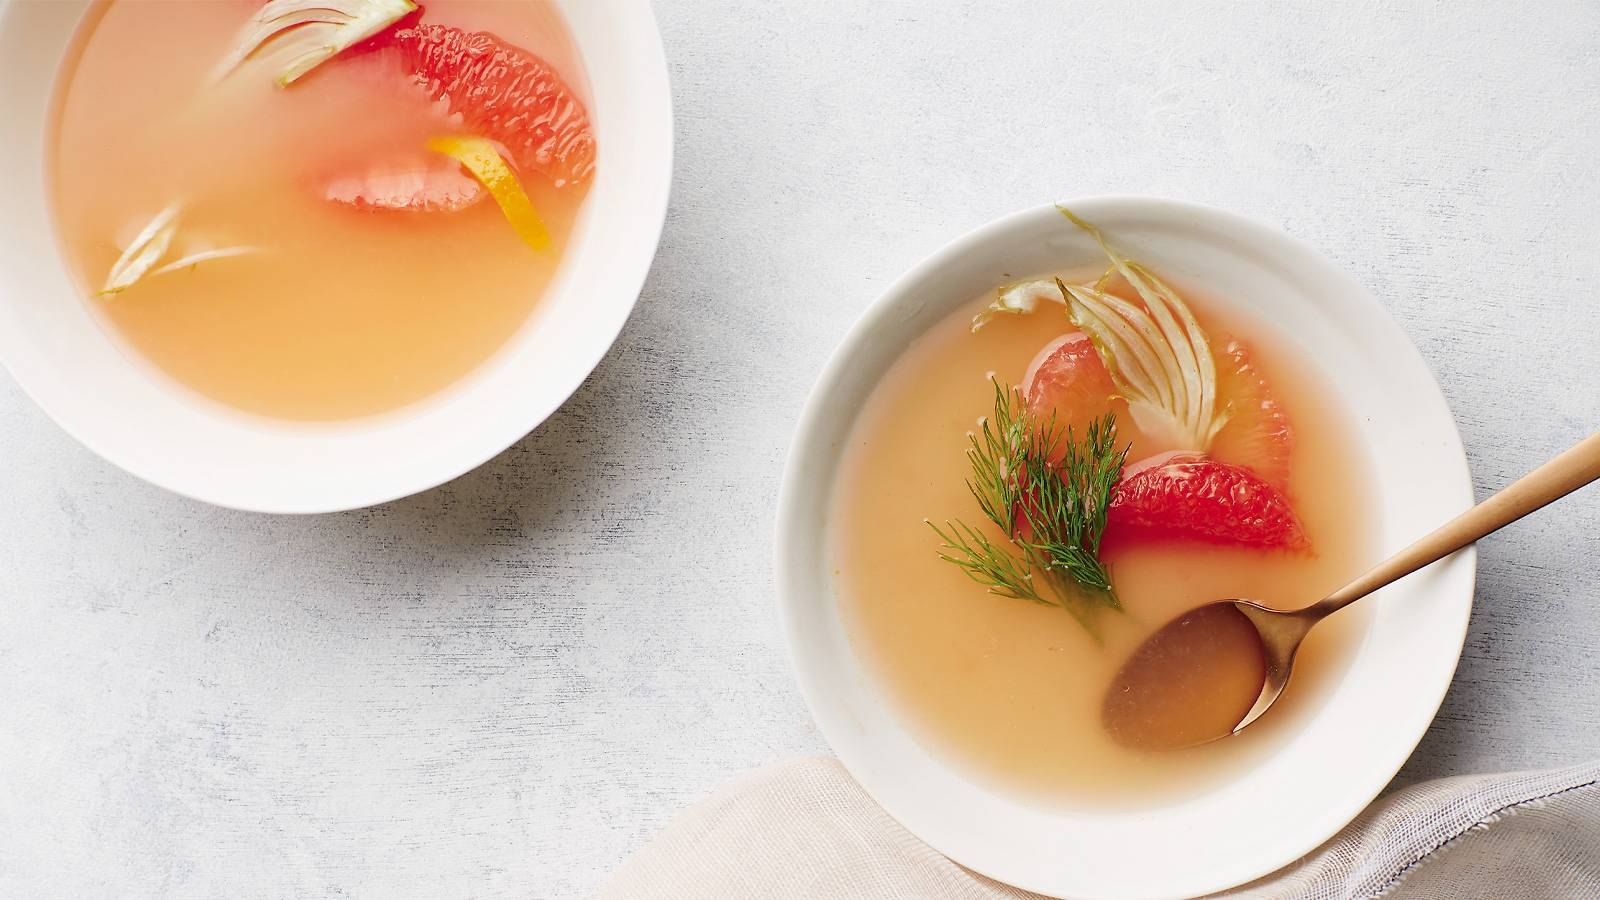 Grapefruit and Fennel Consommé